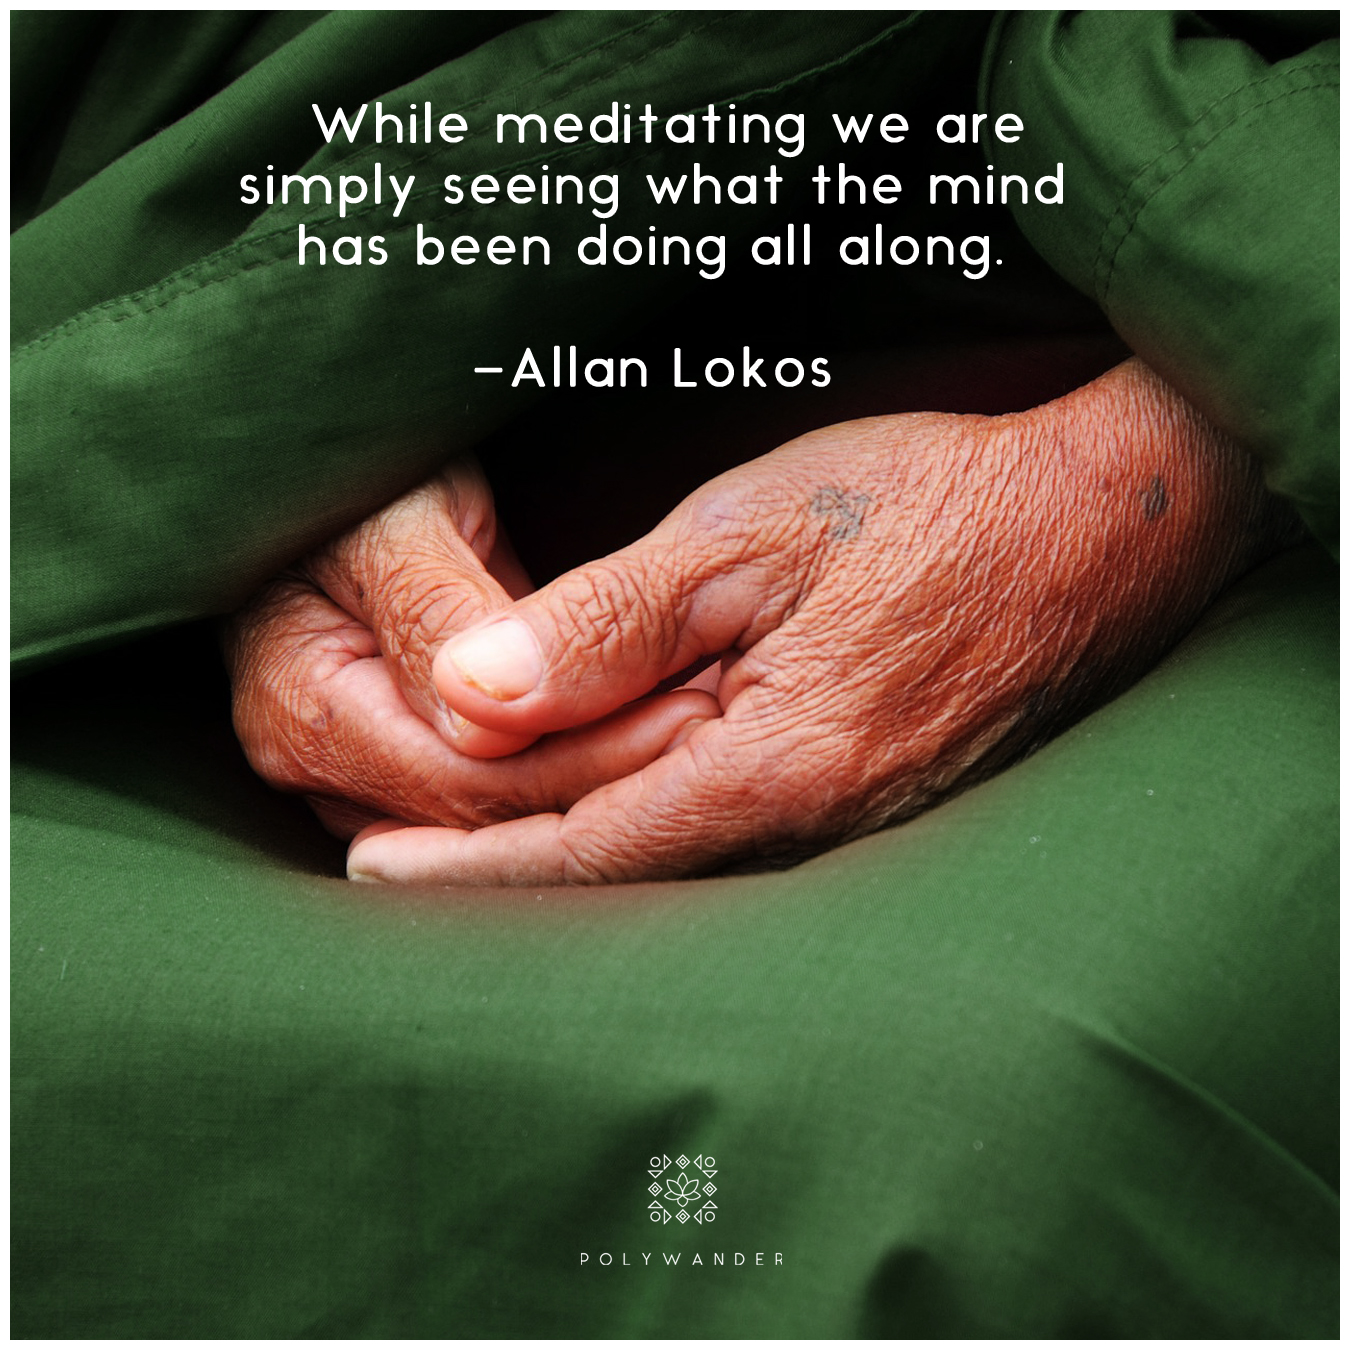 """While meditating we are simply seeing what the mind has been doing all along."" —Allan Lokos"